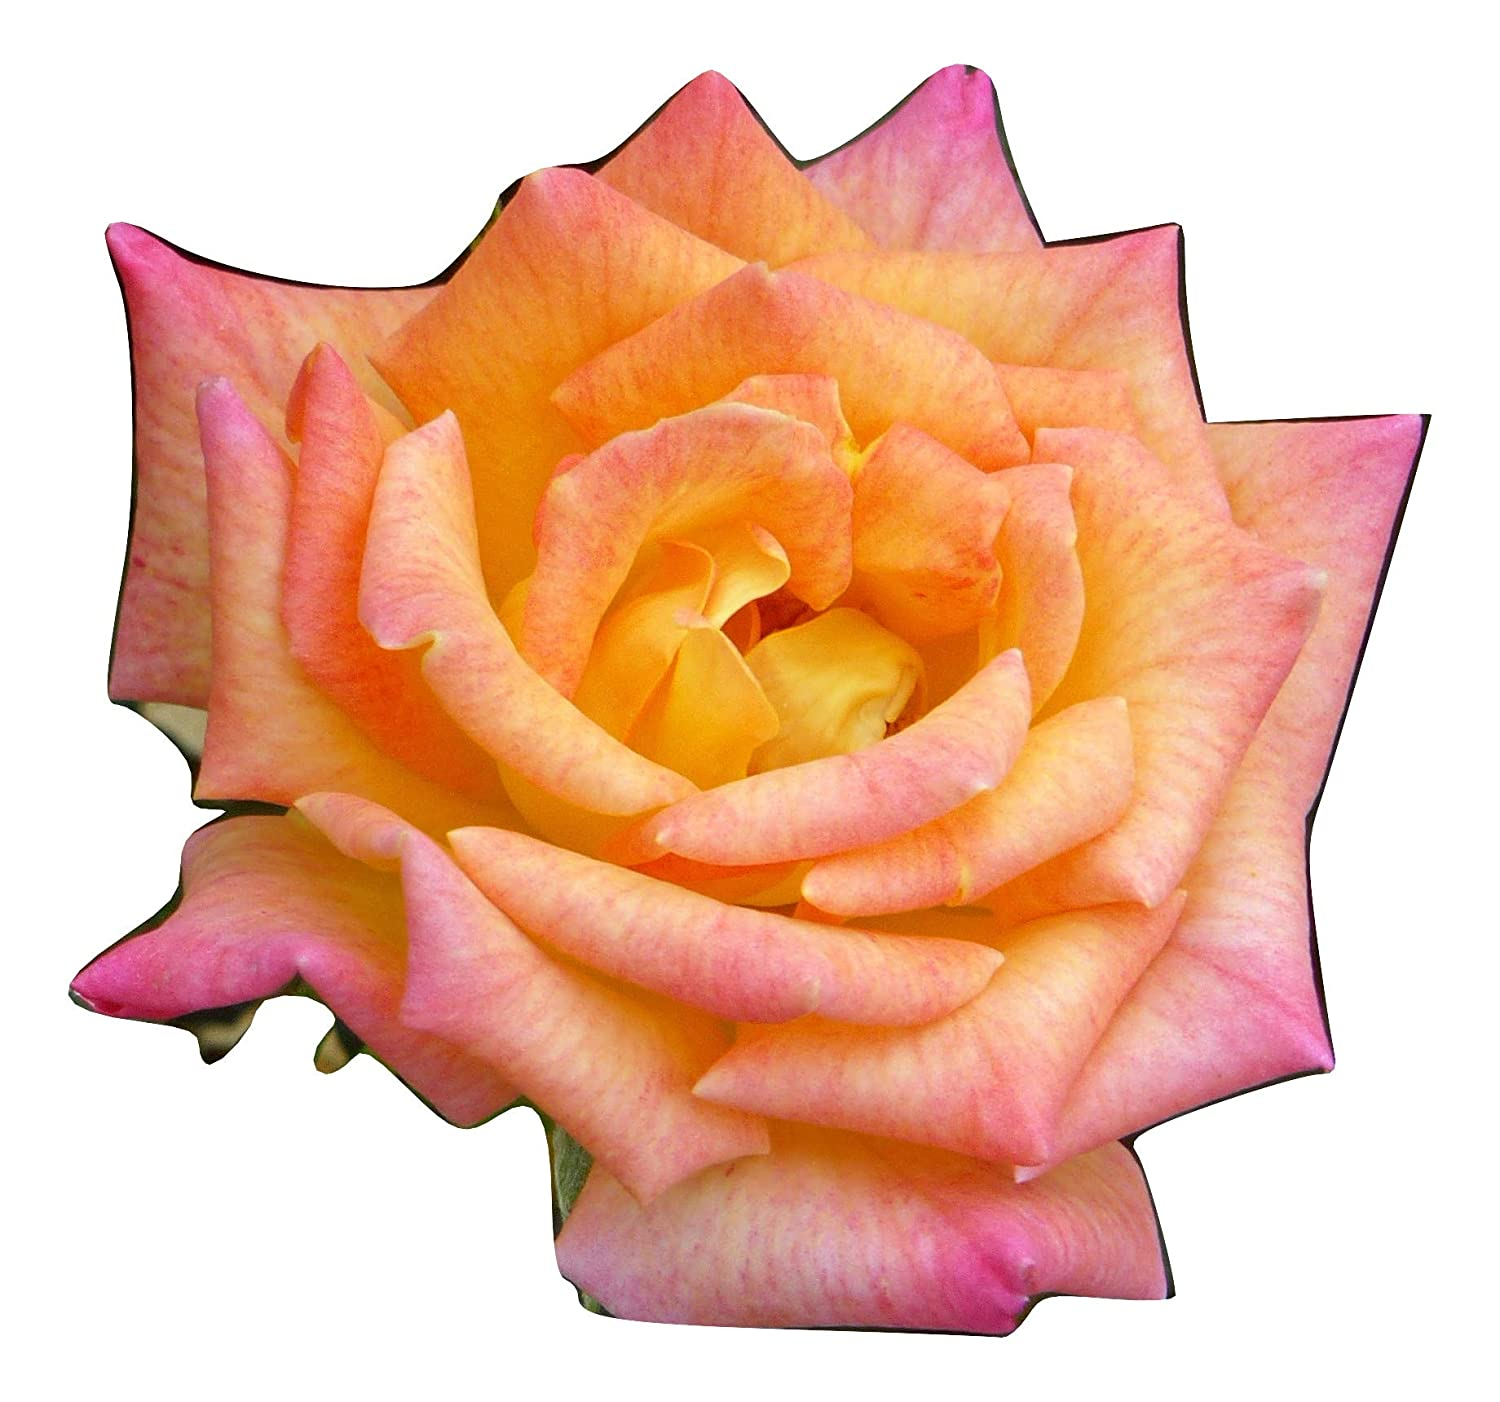 ROSE GEORGE'S PRIDE-Ideal Plant & Flower Gift For Fathers Day & All Occasions Personalised Gift For Dad,Grandad,Him,Boy Giftaplant Ref: ROSGEORPRID9